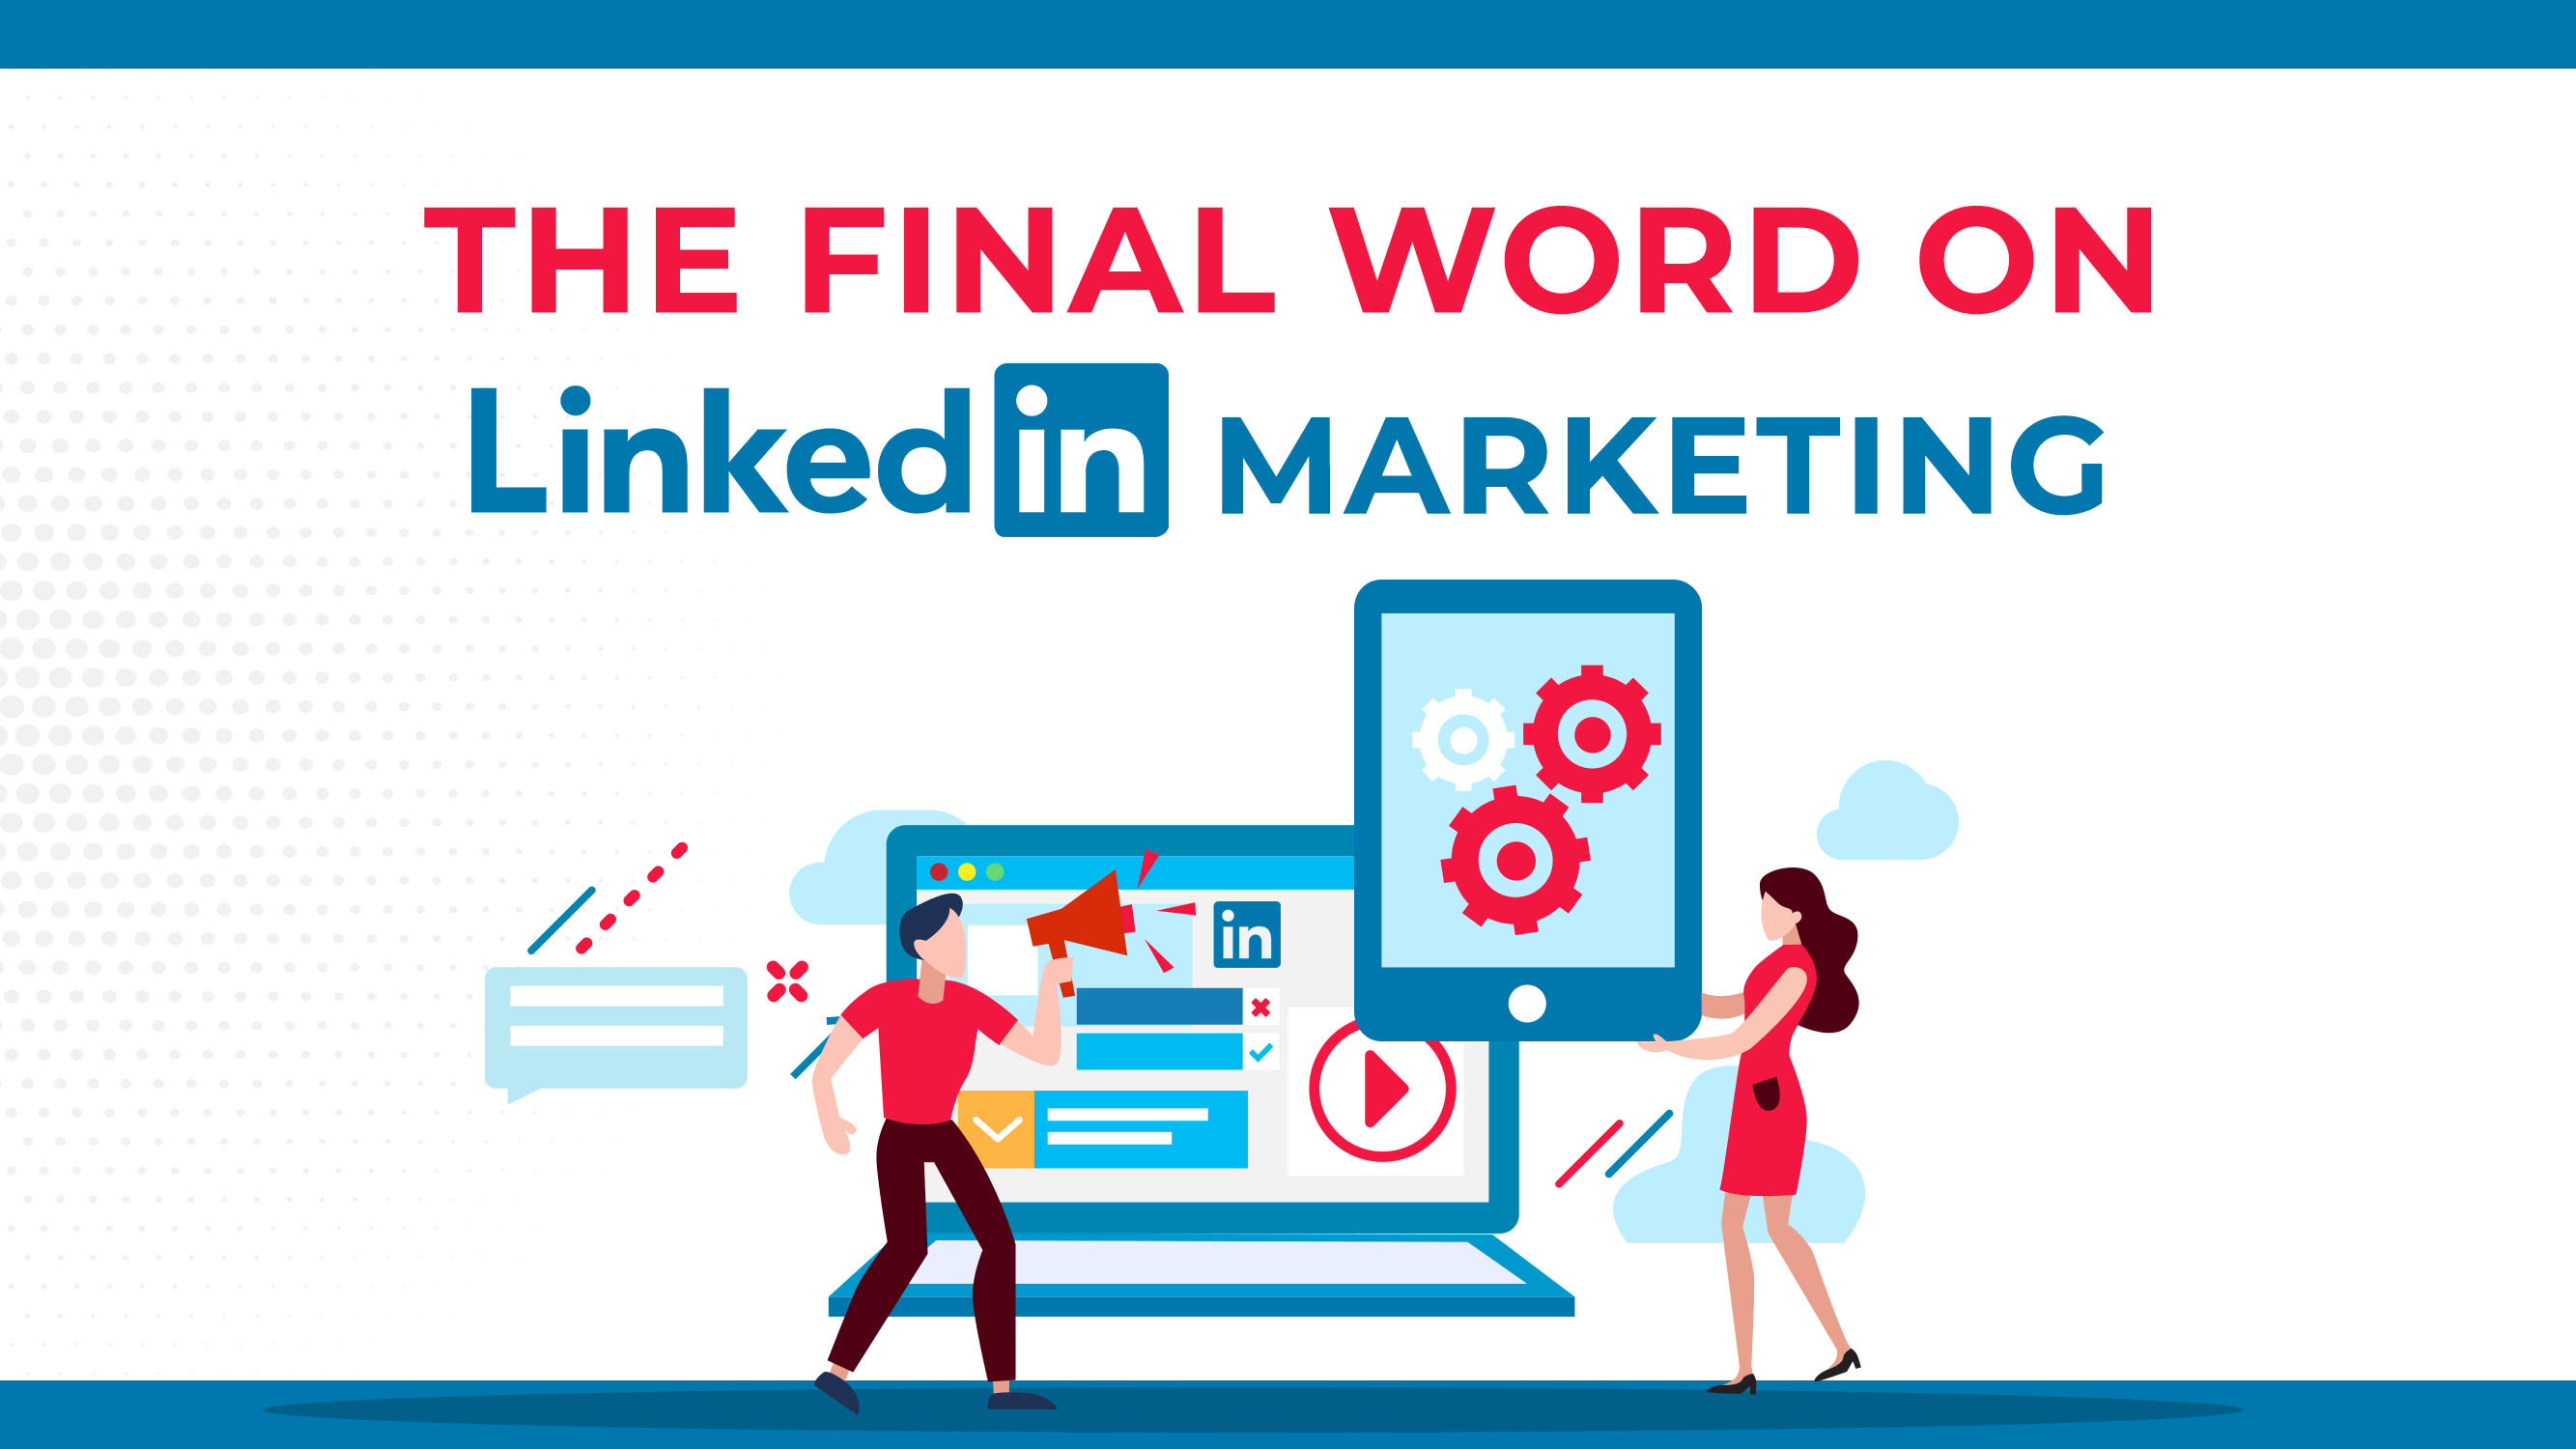 A palavra final sobre o marketing do LinkedIn